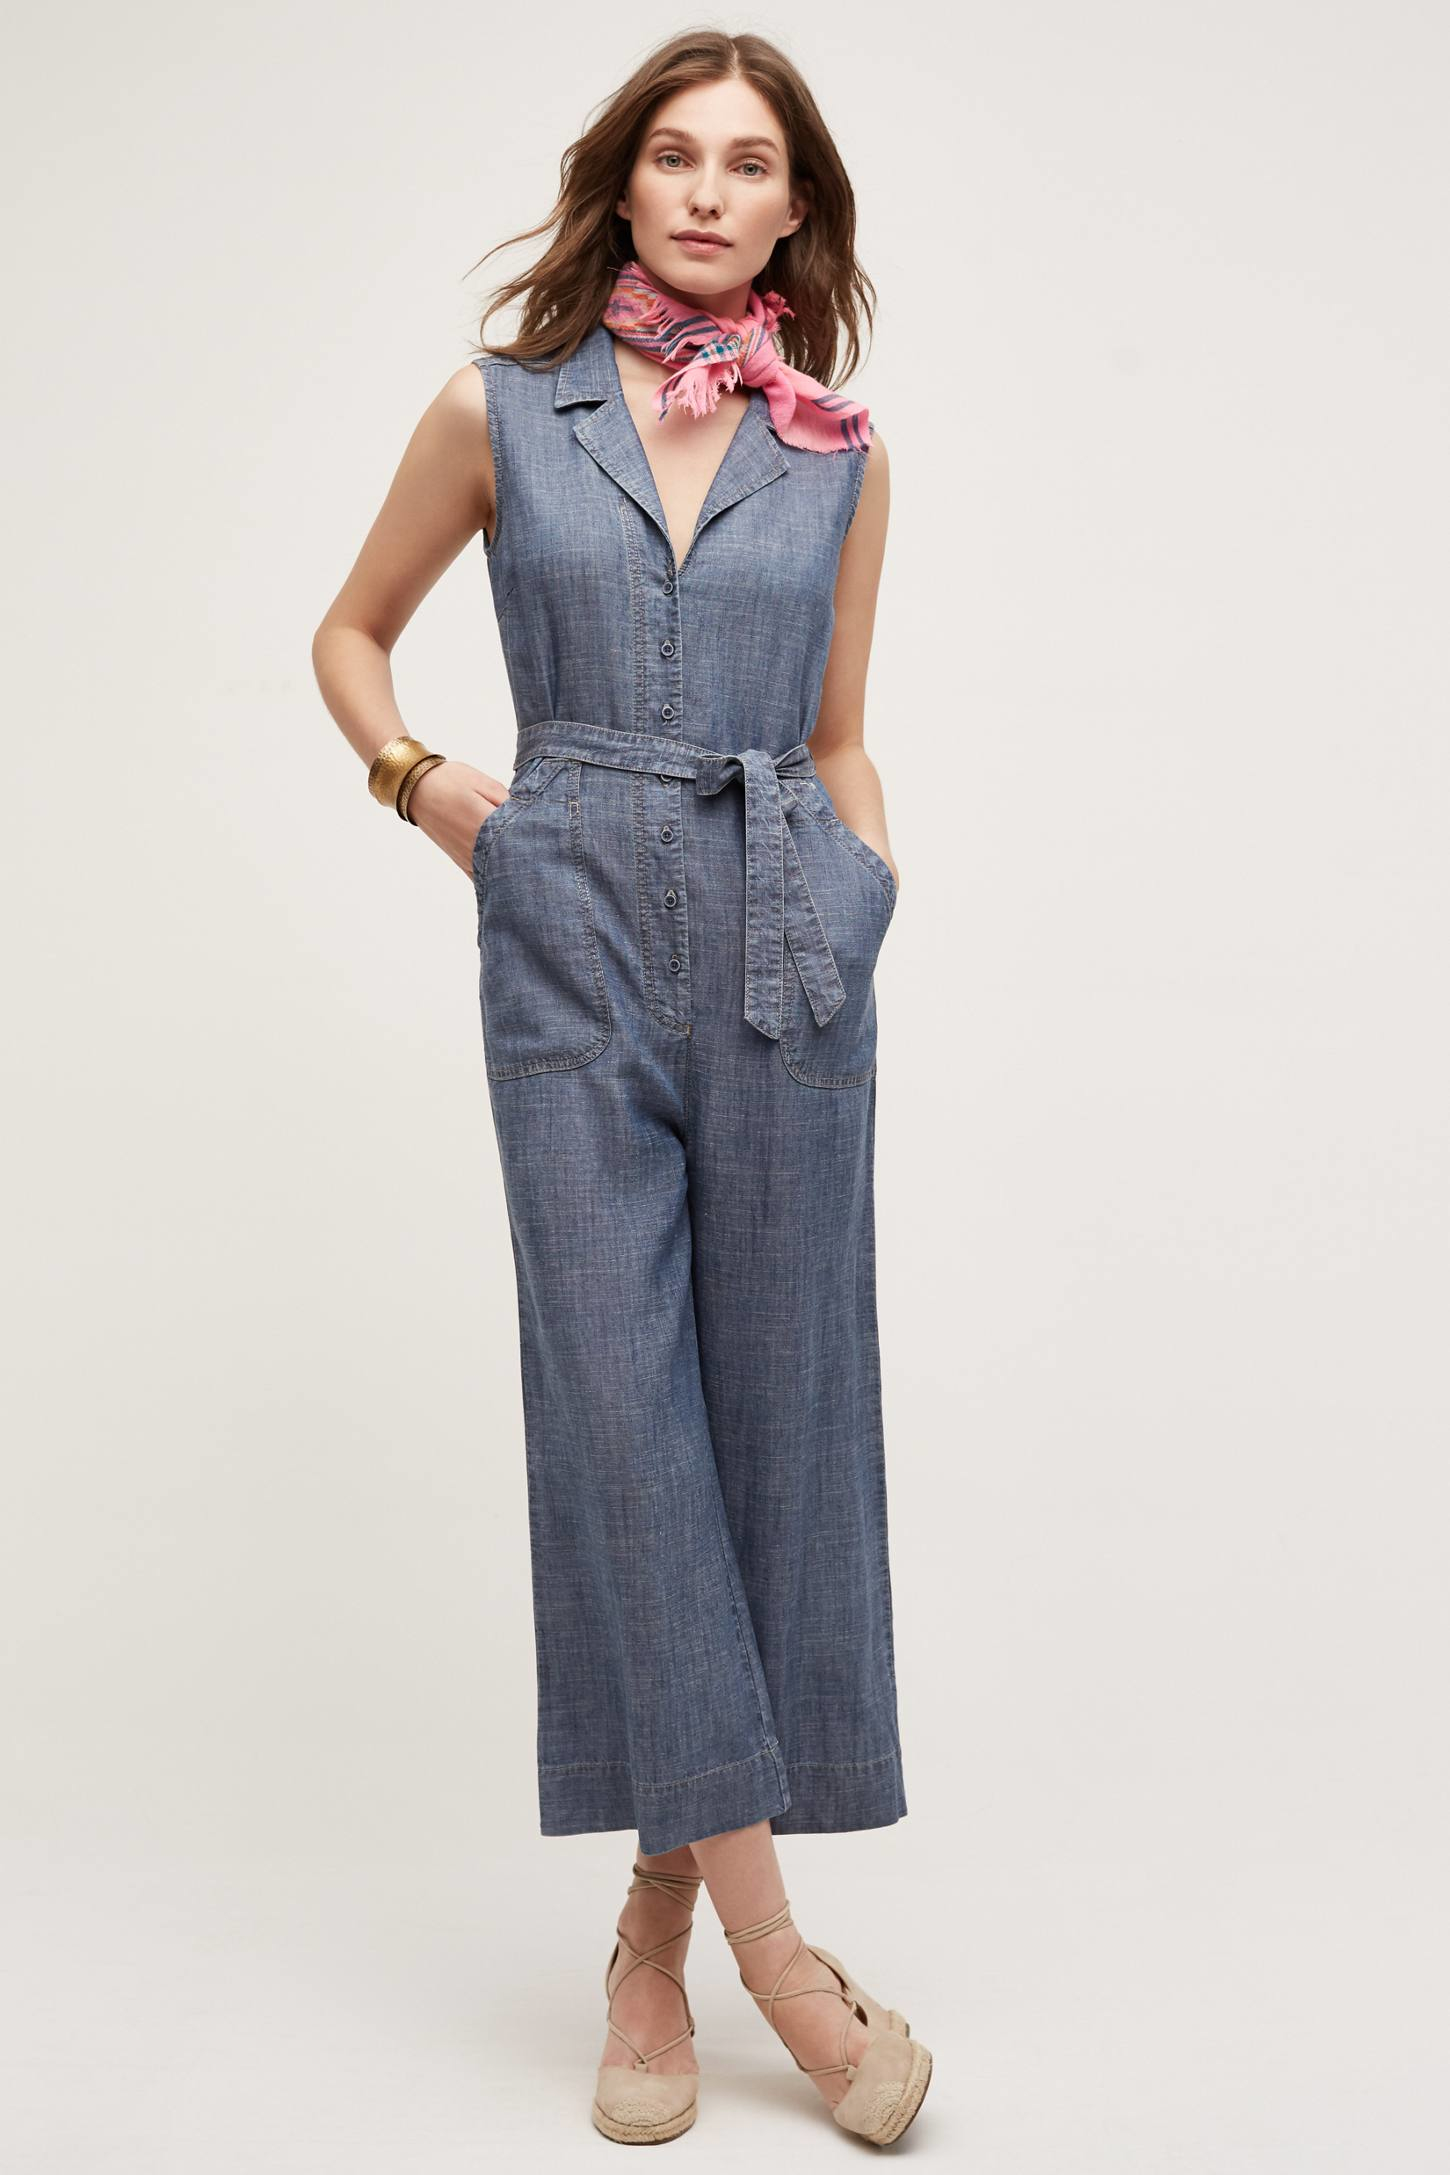 071aed95d12d Lyst - Level 99 Chambray Jumpsuit in Blue